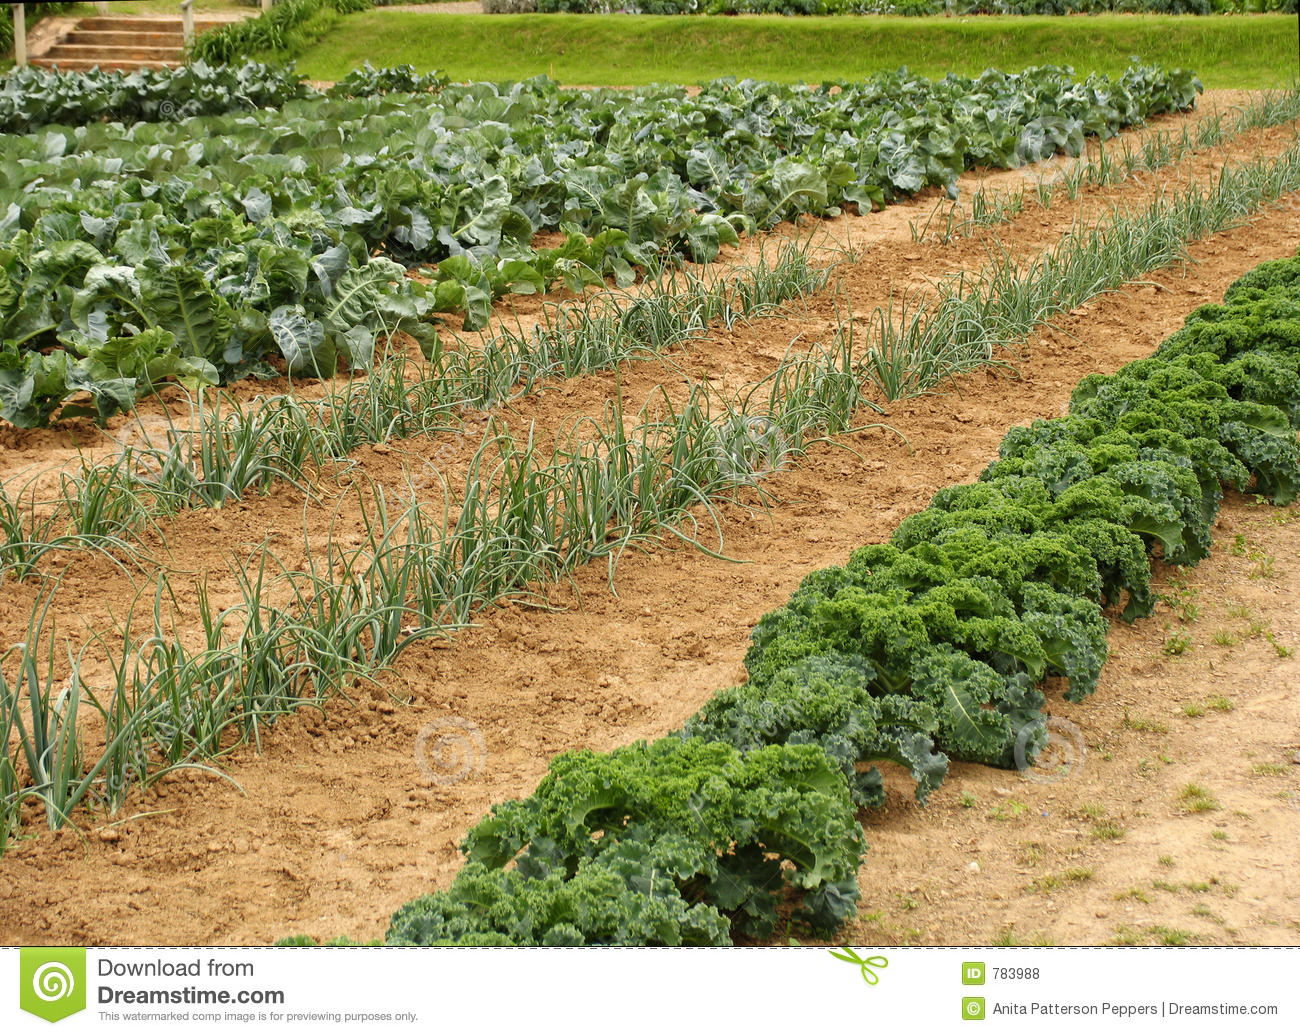 Garden row clipart vegetable image royalty free Vegetable Garden Rows Clipart - Clipart Kid image royalty free